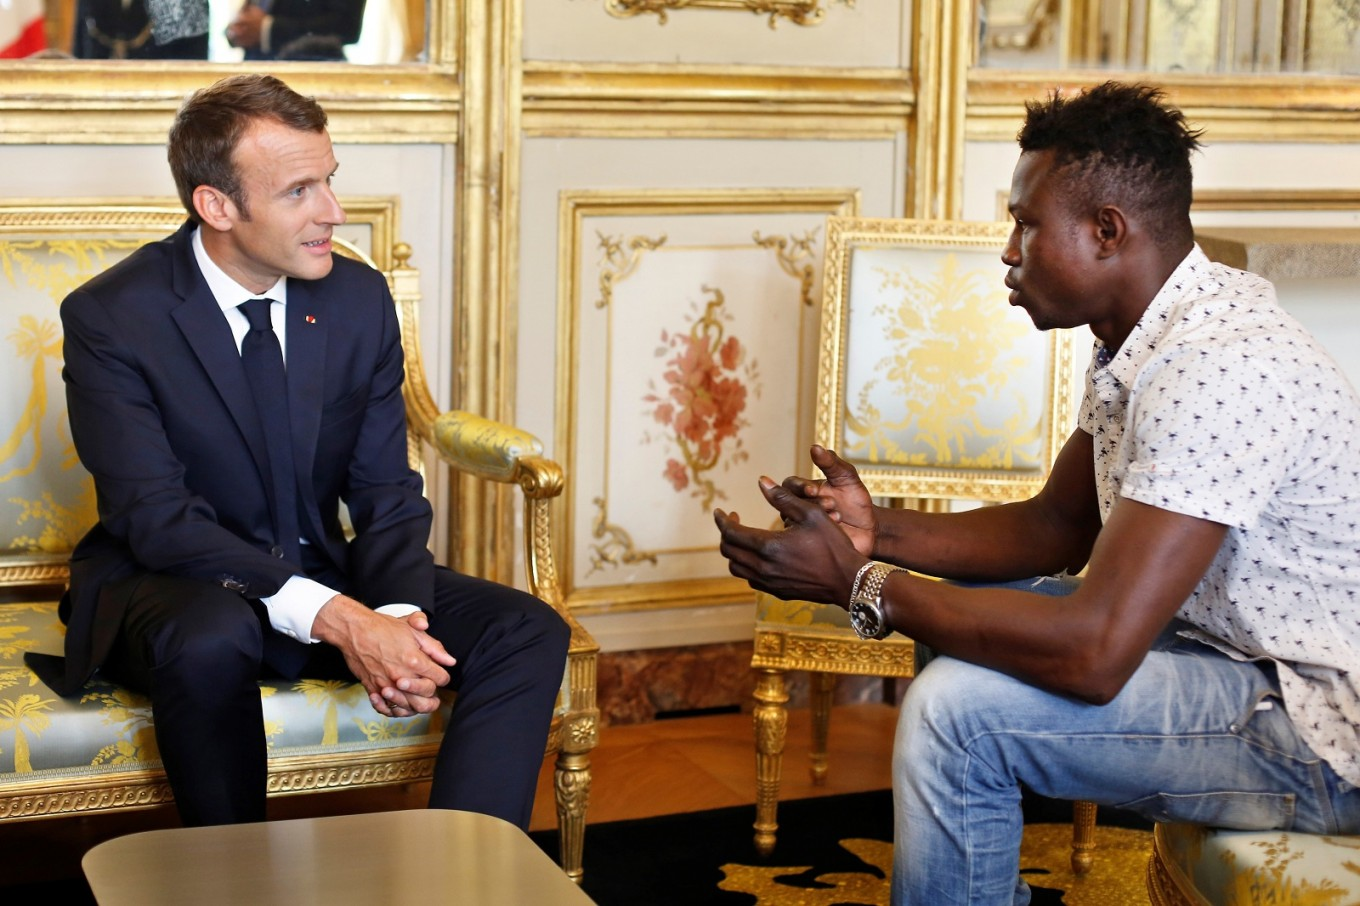 'Hero' Malian who saved child to get French citizenship